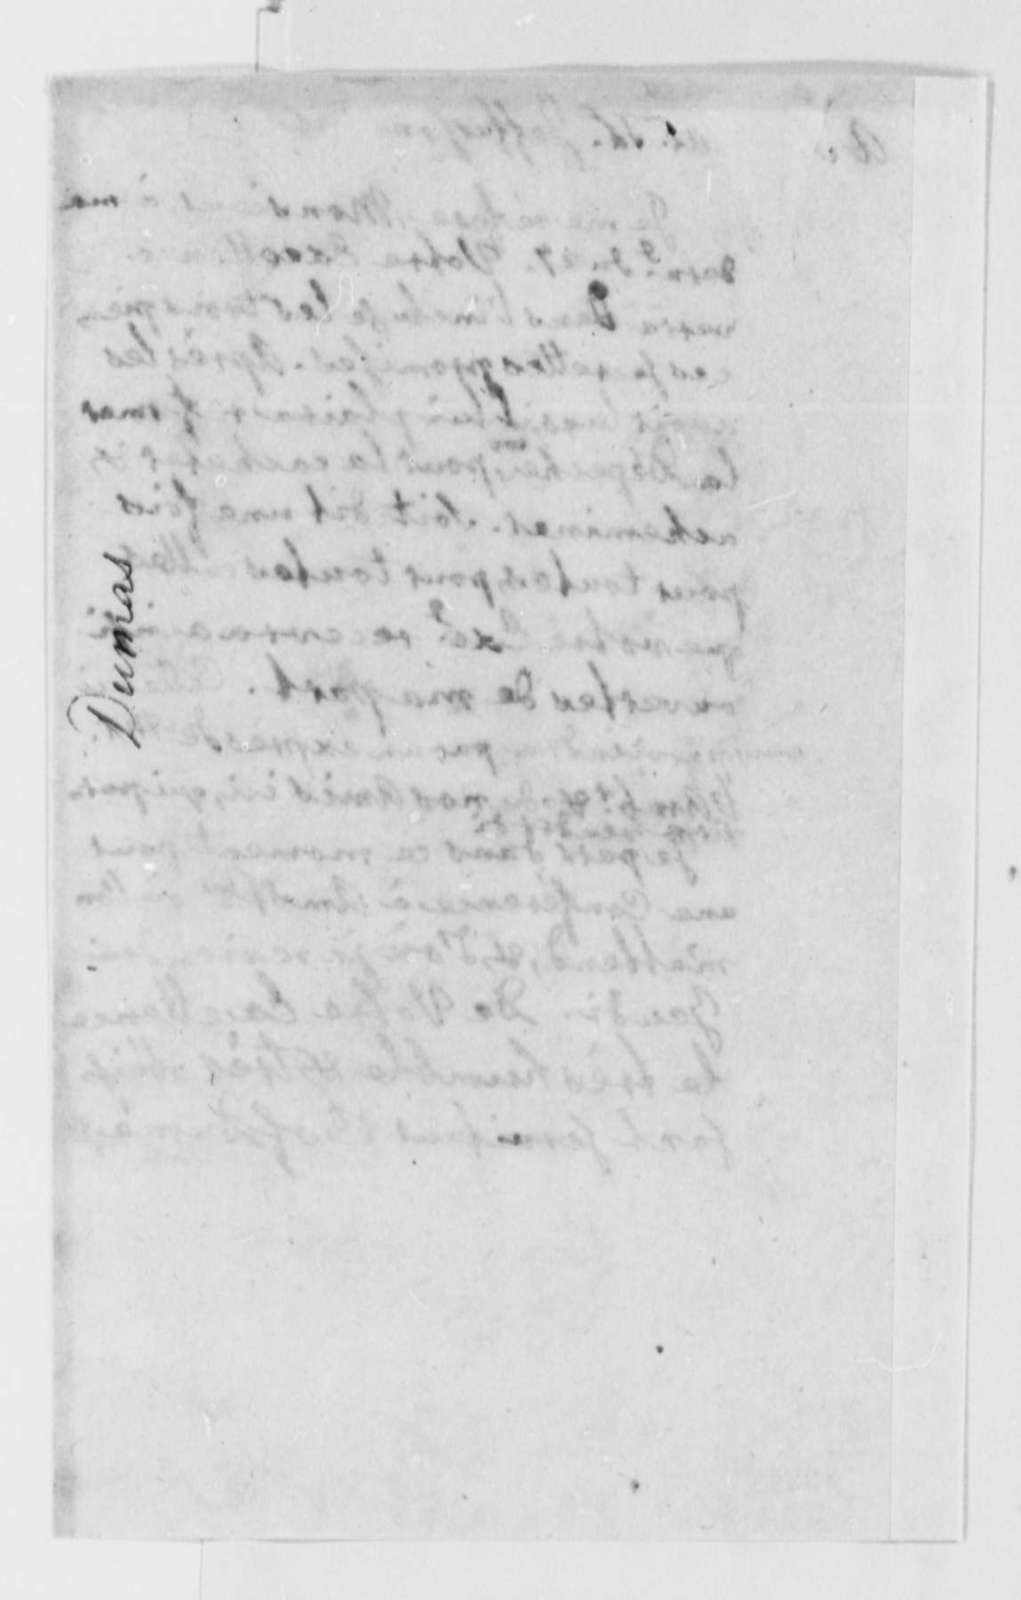 Charles William Frederic Dumas to Thomas Jefferson, January 31, 1786, in French